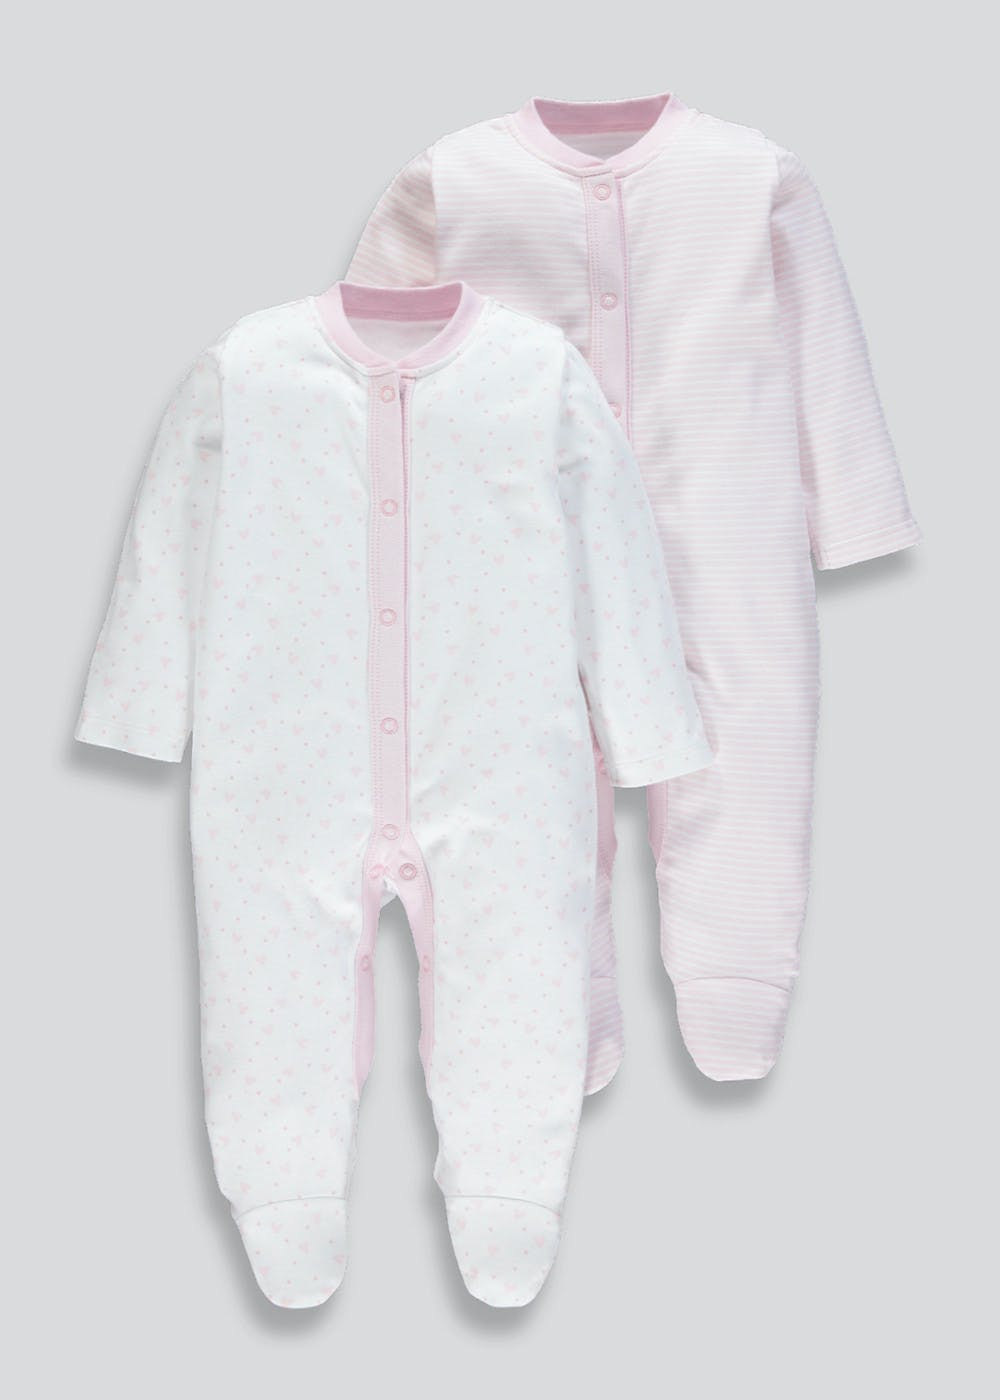 9b2a78cc2036 Unisex 2 Pack Baby Grows (Tiny Baby-18mths) – Pink – Matalan